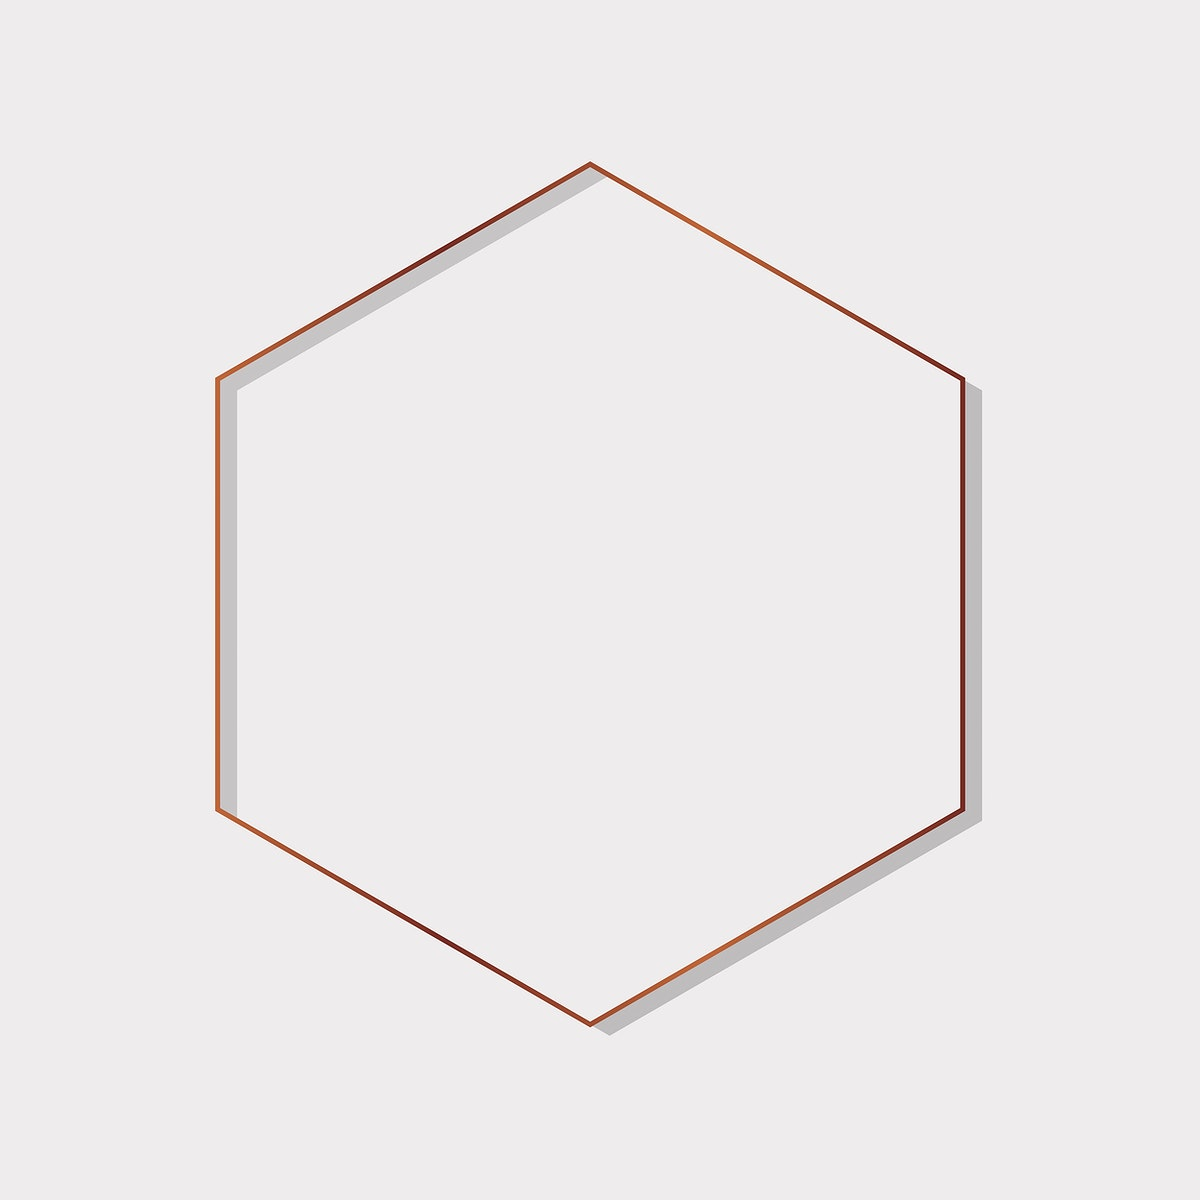 Gold hexagon frame on a blank background